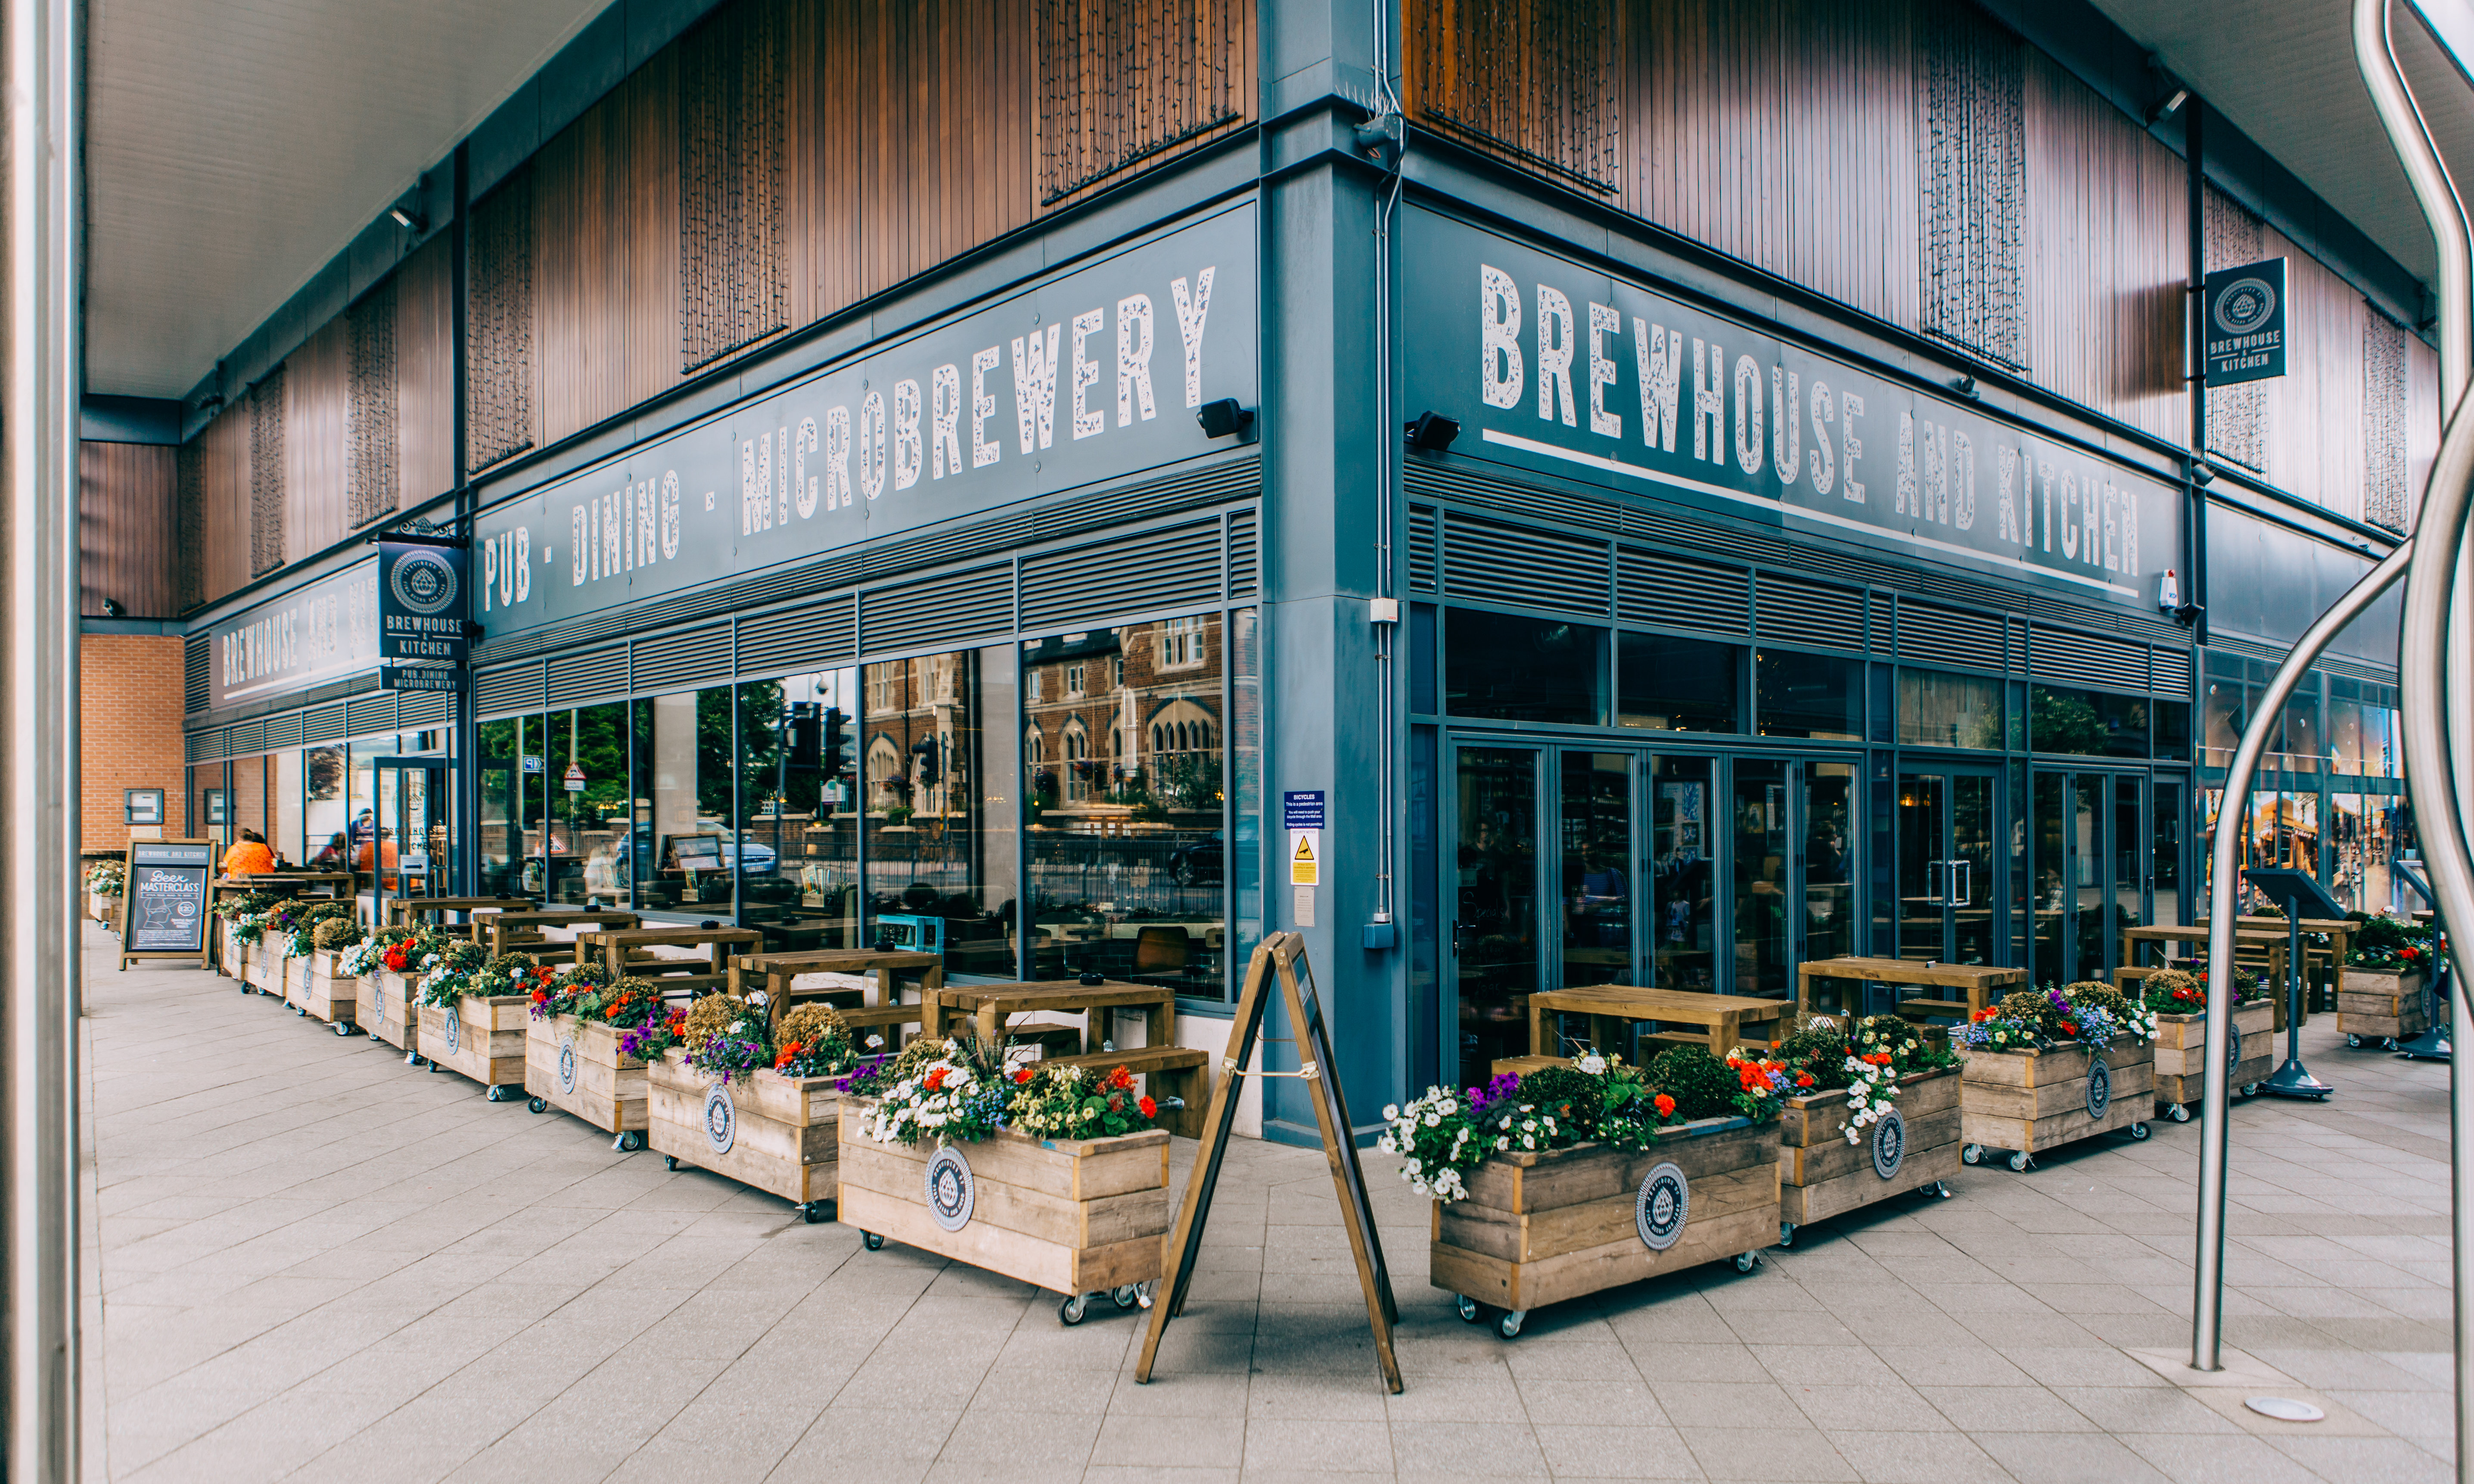 Reviews For Brewhouse And Kitchen Cheltenham